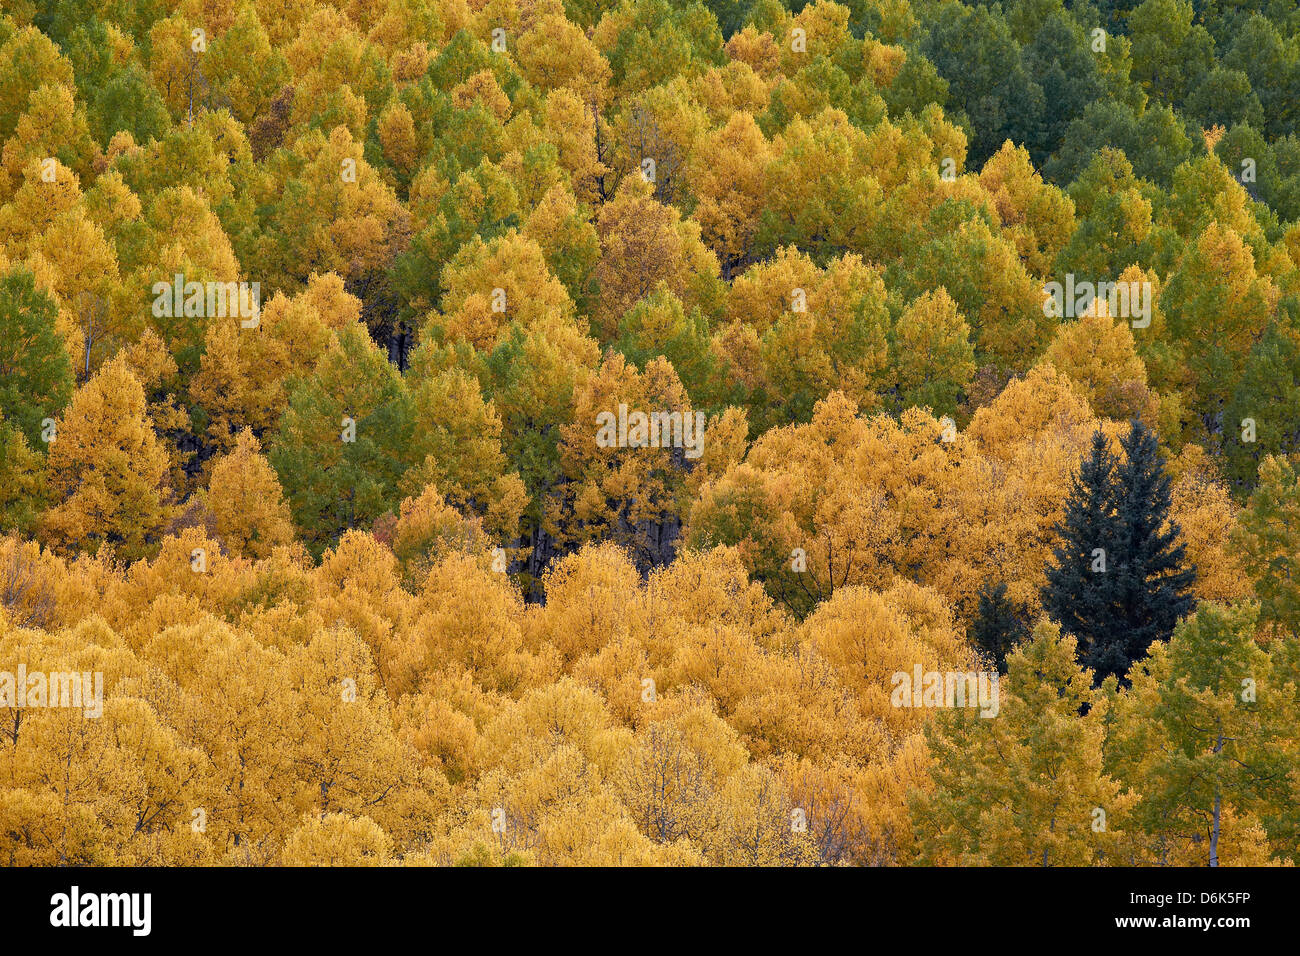 Evergreen among yellow and green aspens in the fall, Uncompahgre National Forest, Colorado, USA - Stock Image